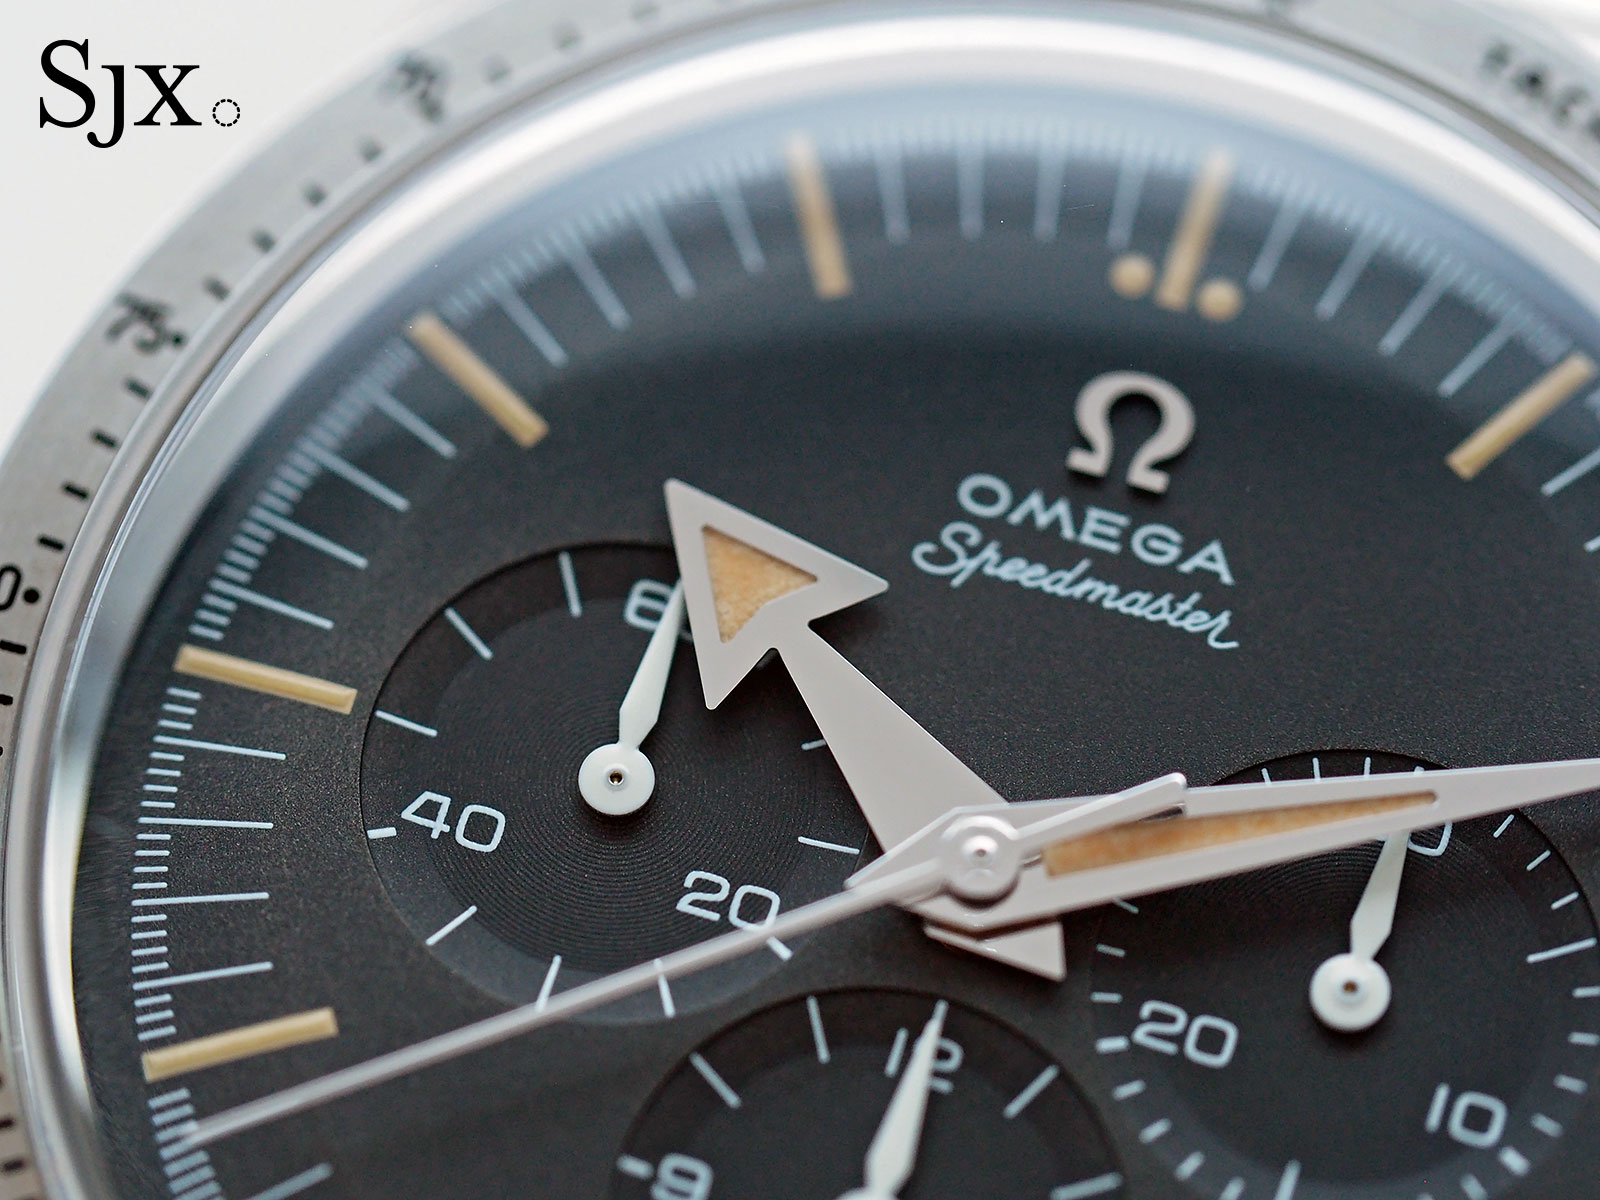 Omega 1957 Trilogy Speedmaster 5